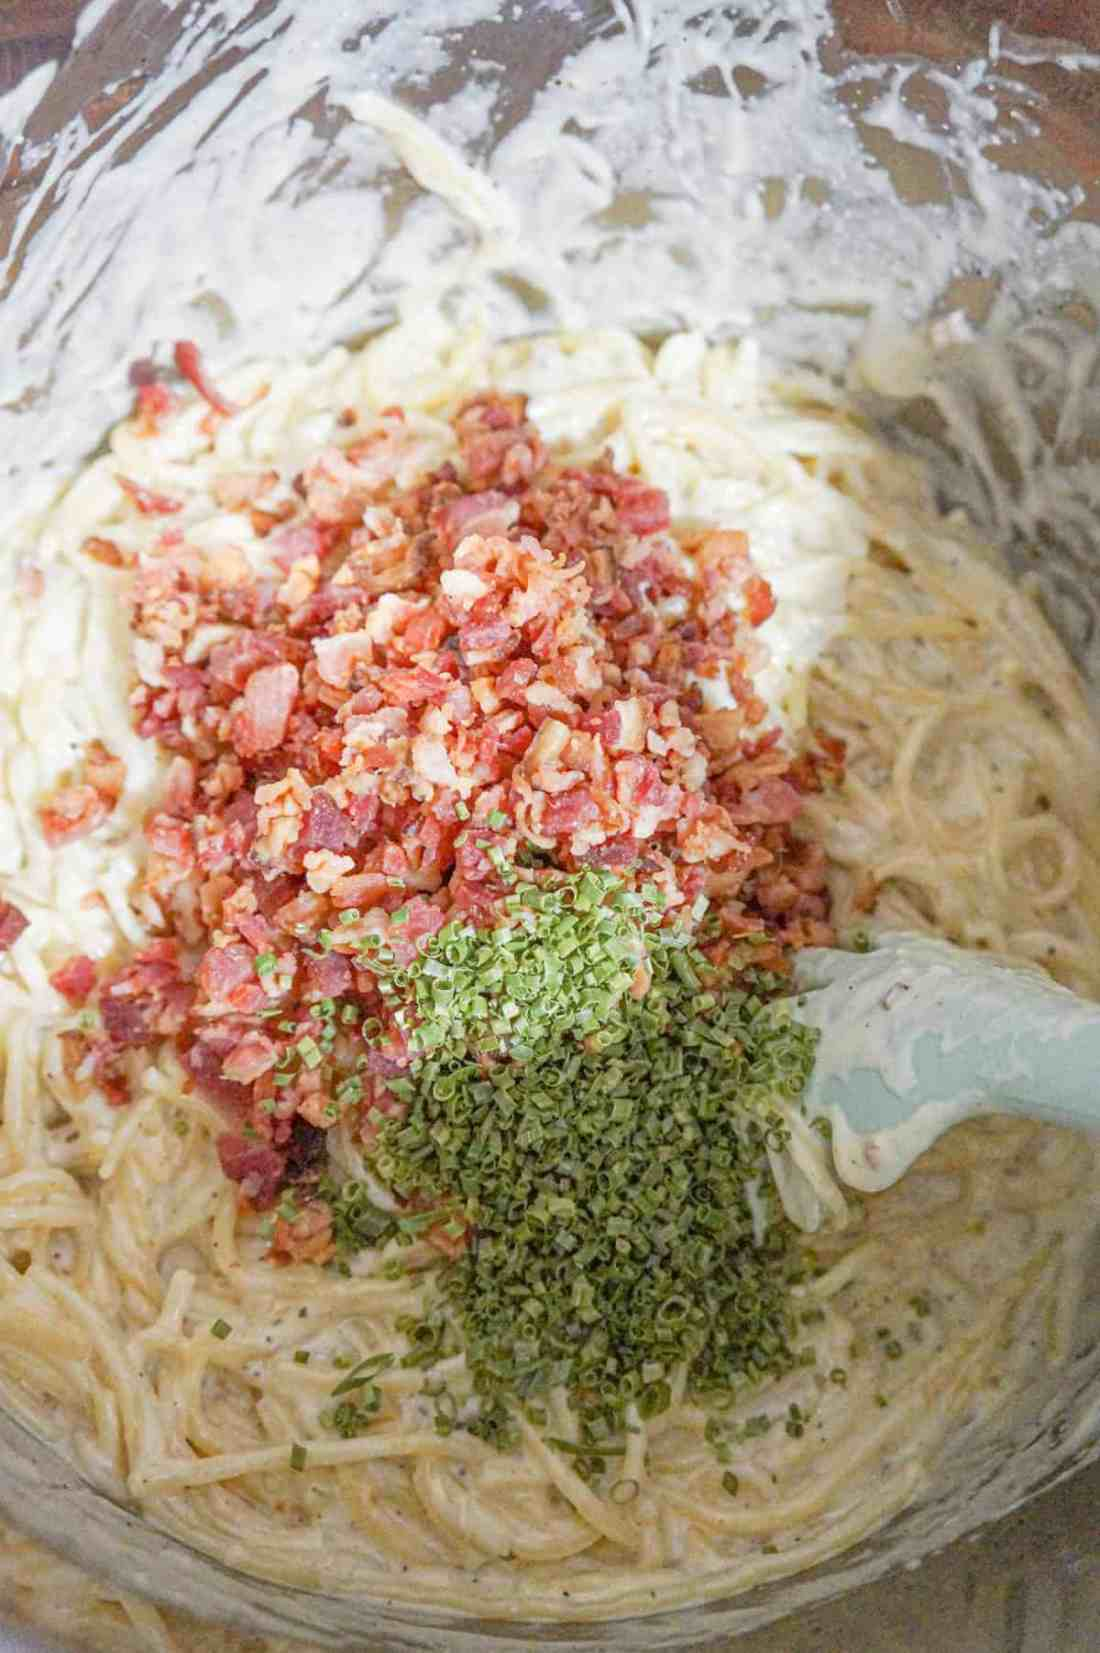 chopped chives and crumbled bacon on top of creamy spaghetti in an Instant Pot